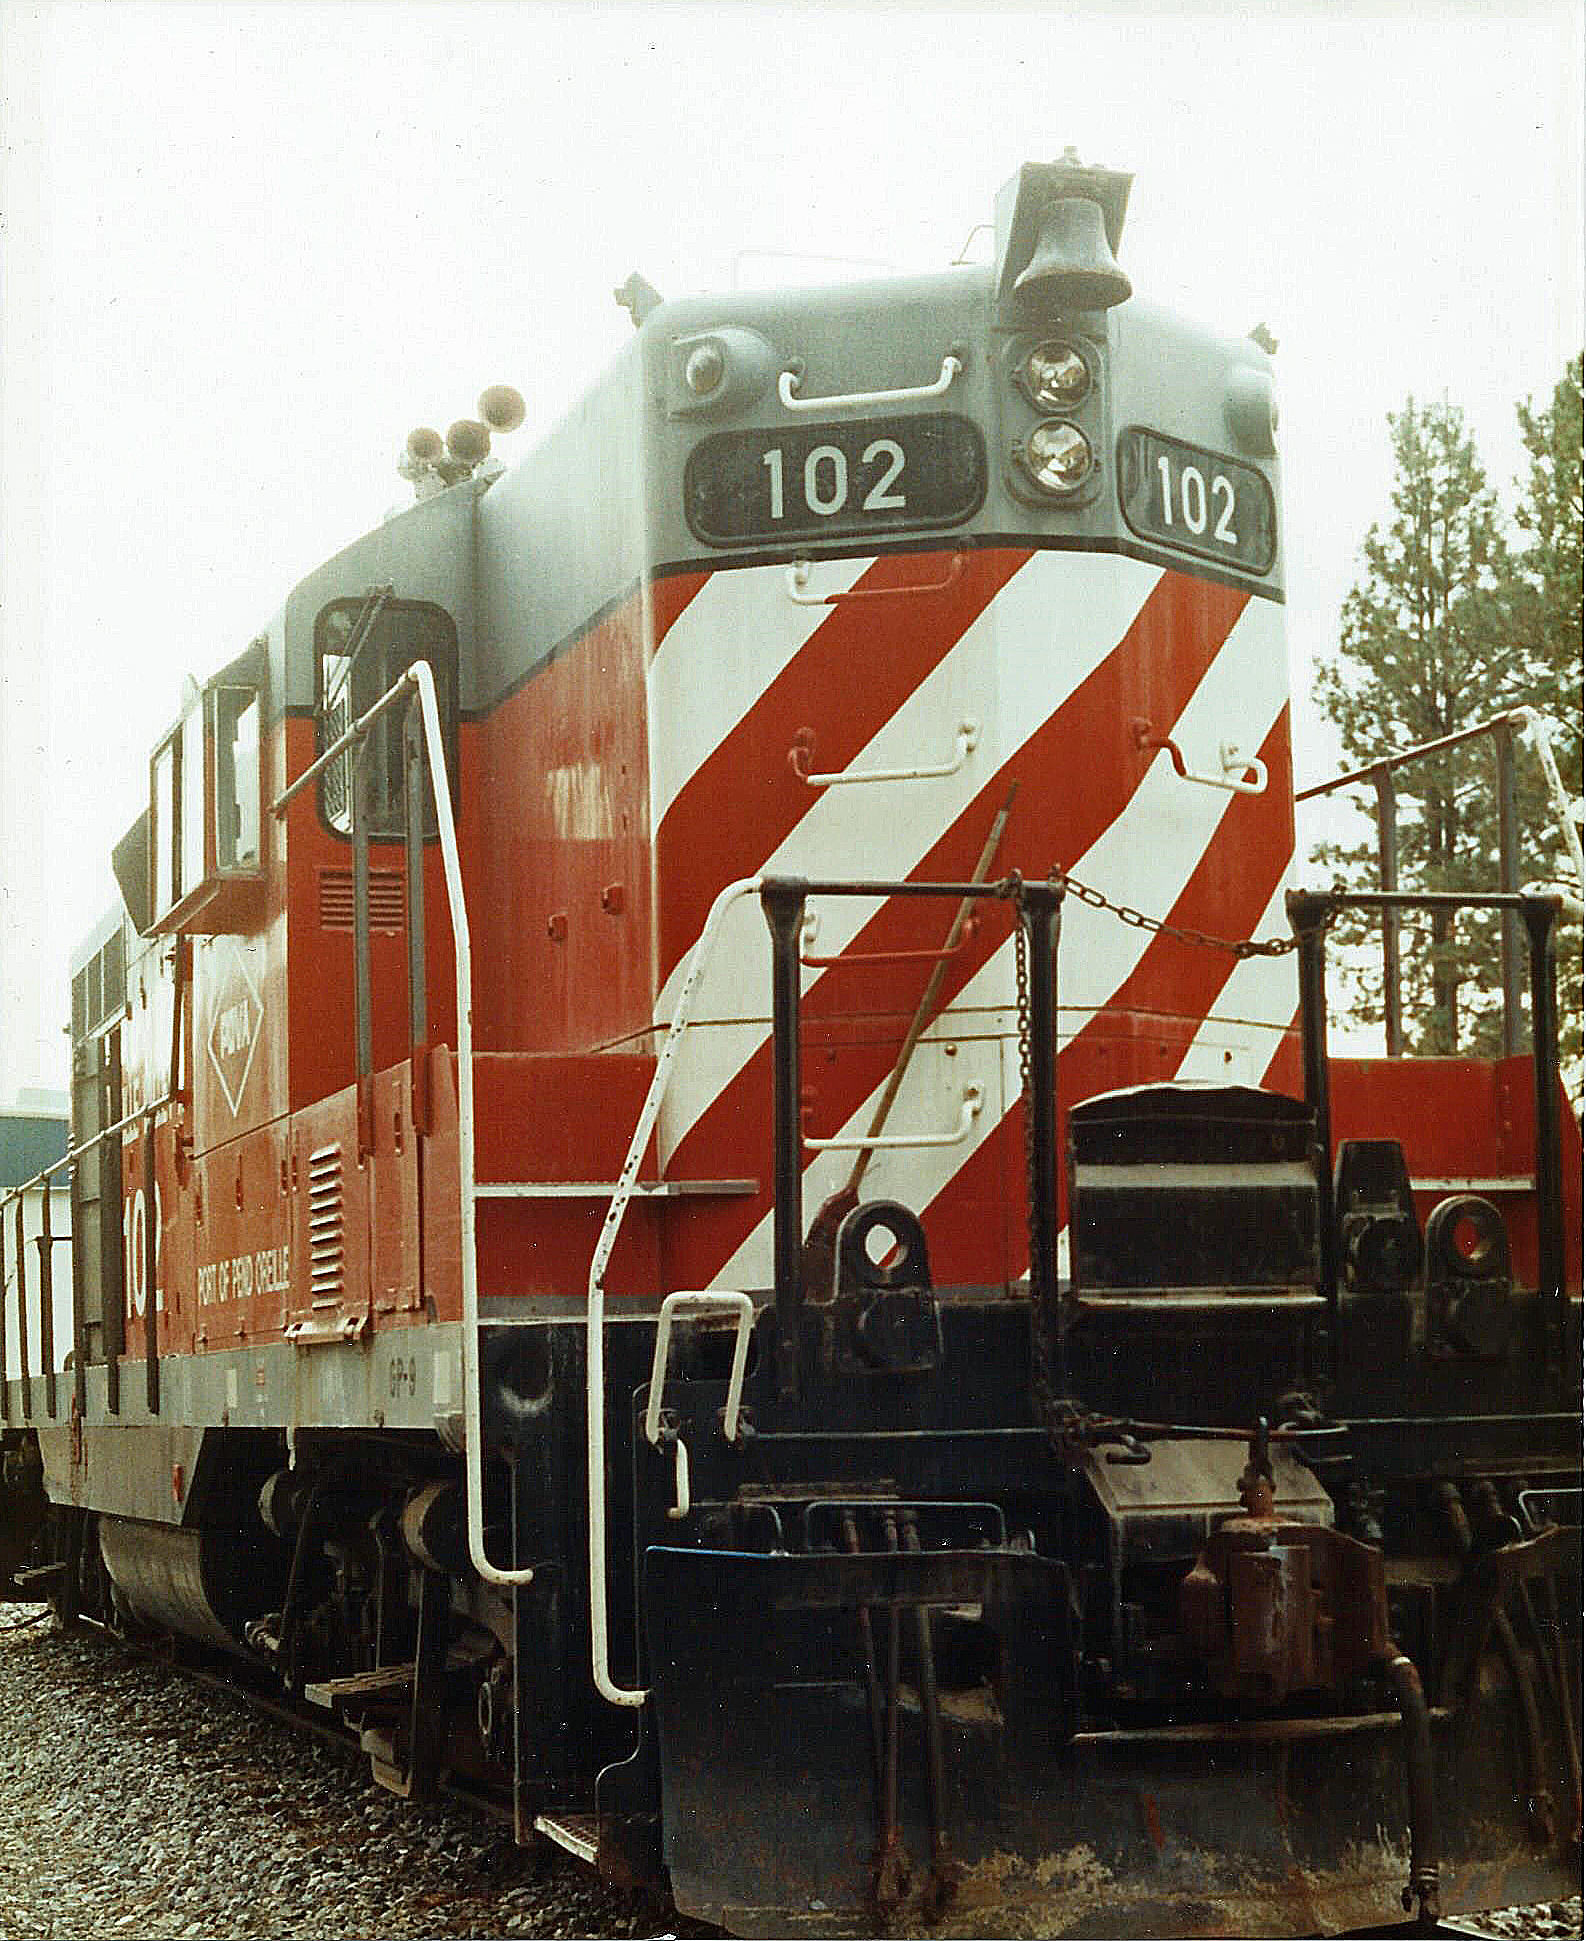 POVA 102 Locomotive